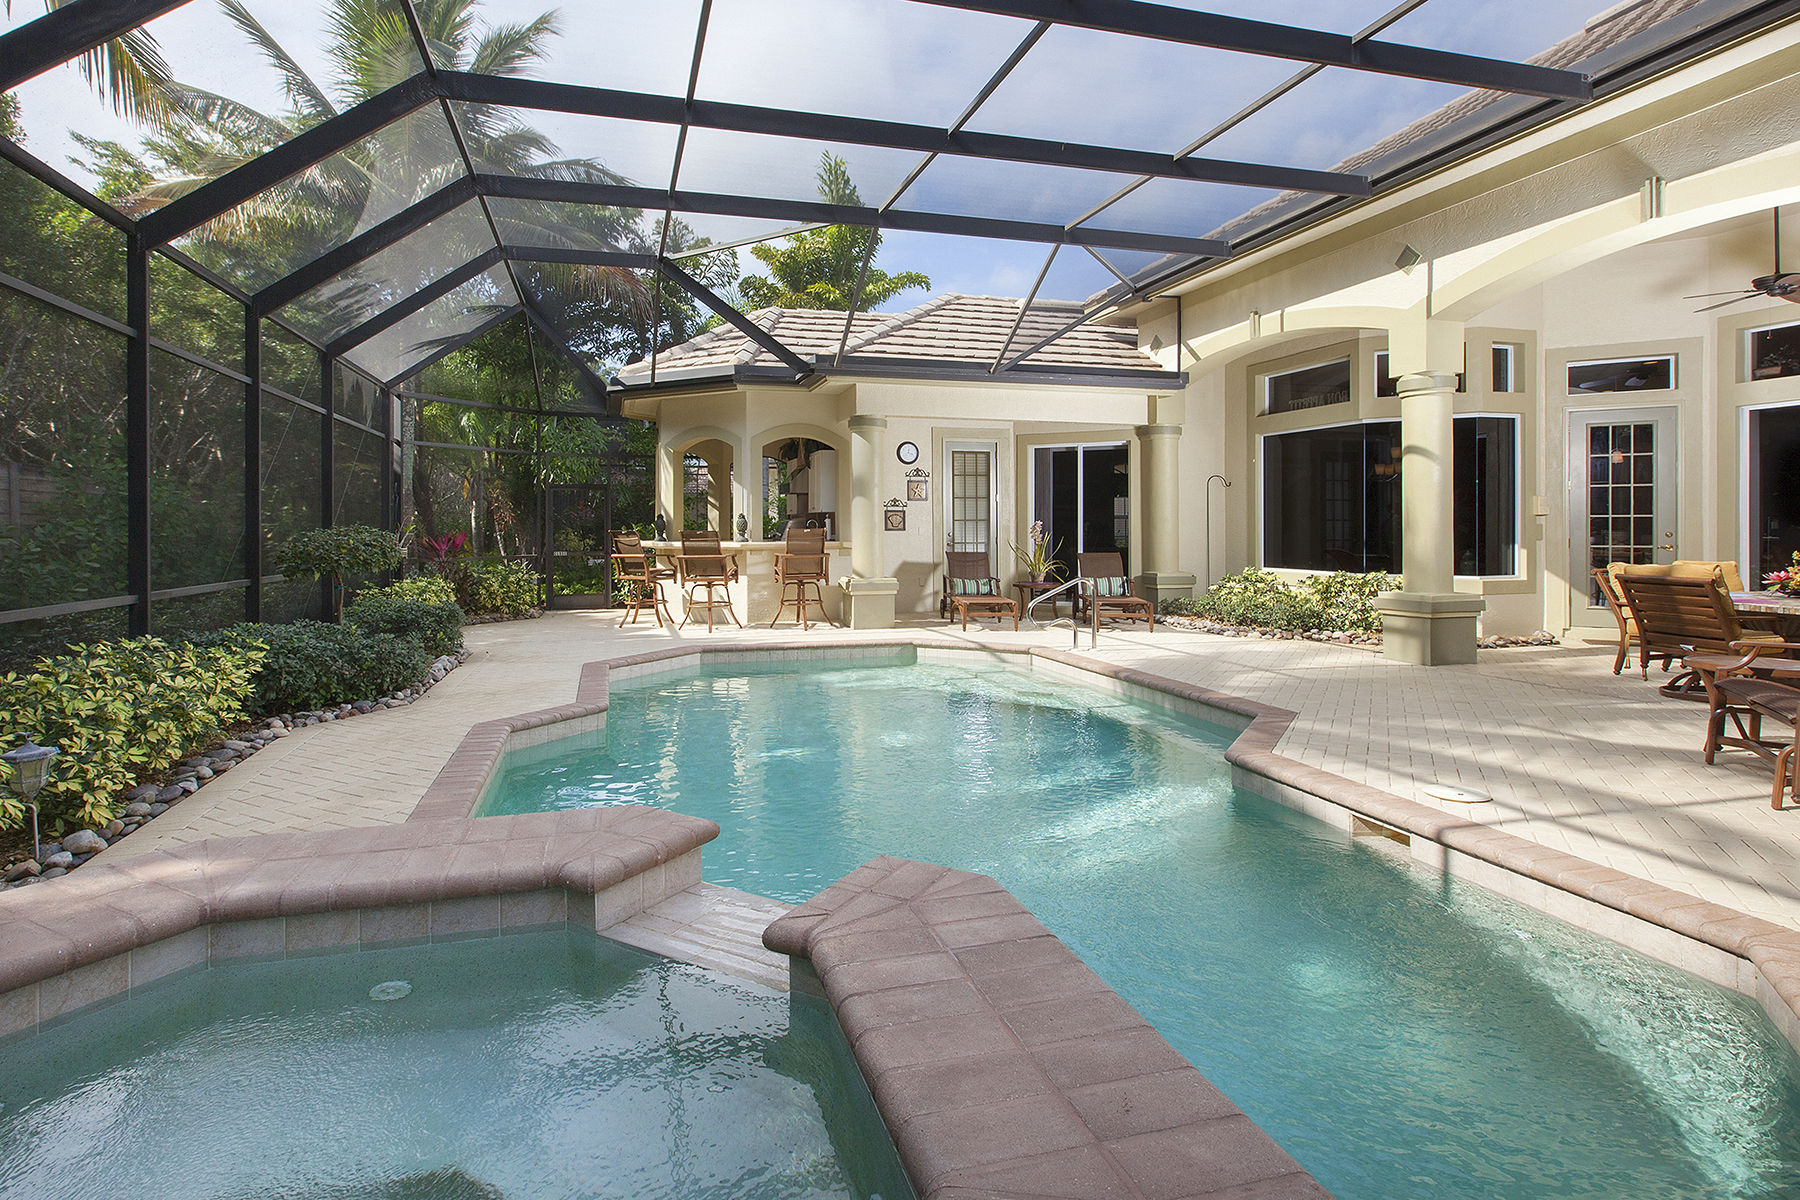 Single Family Home for Sale at FIDDLERS CREEK 7701 Mulberry Ln Naples, Florida, 34114 United States